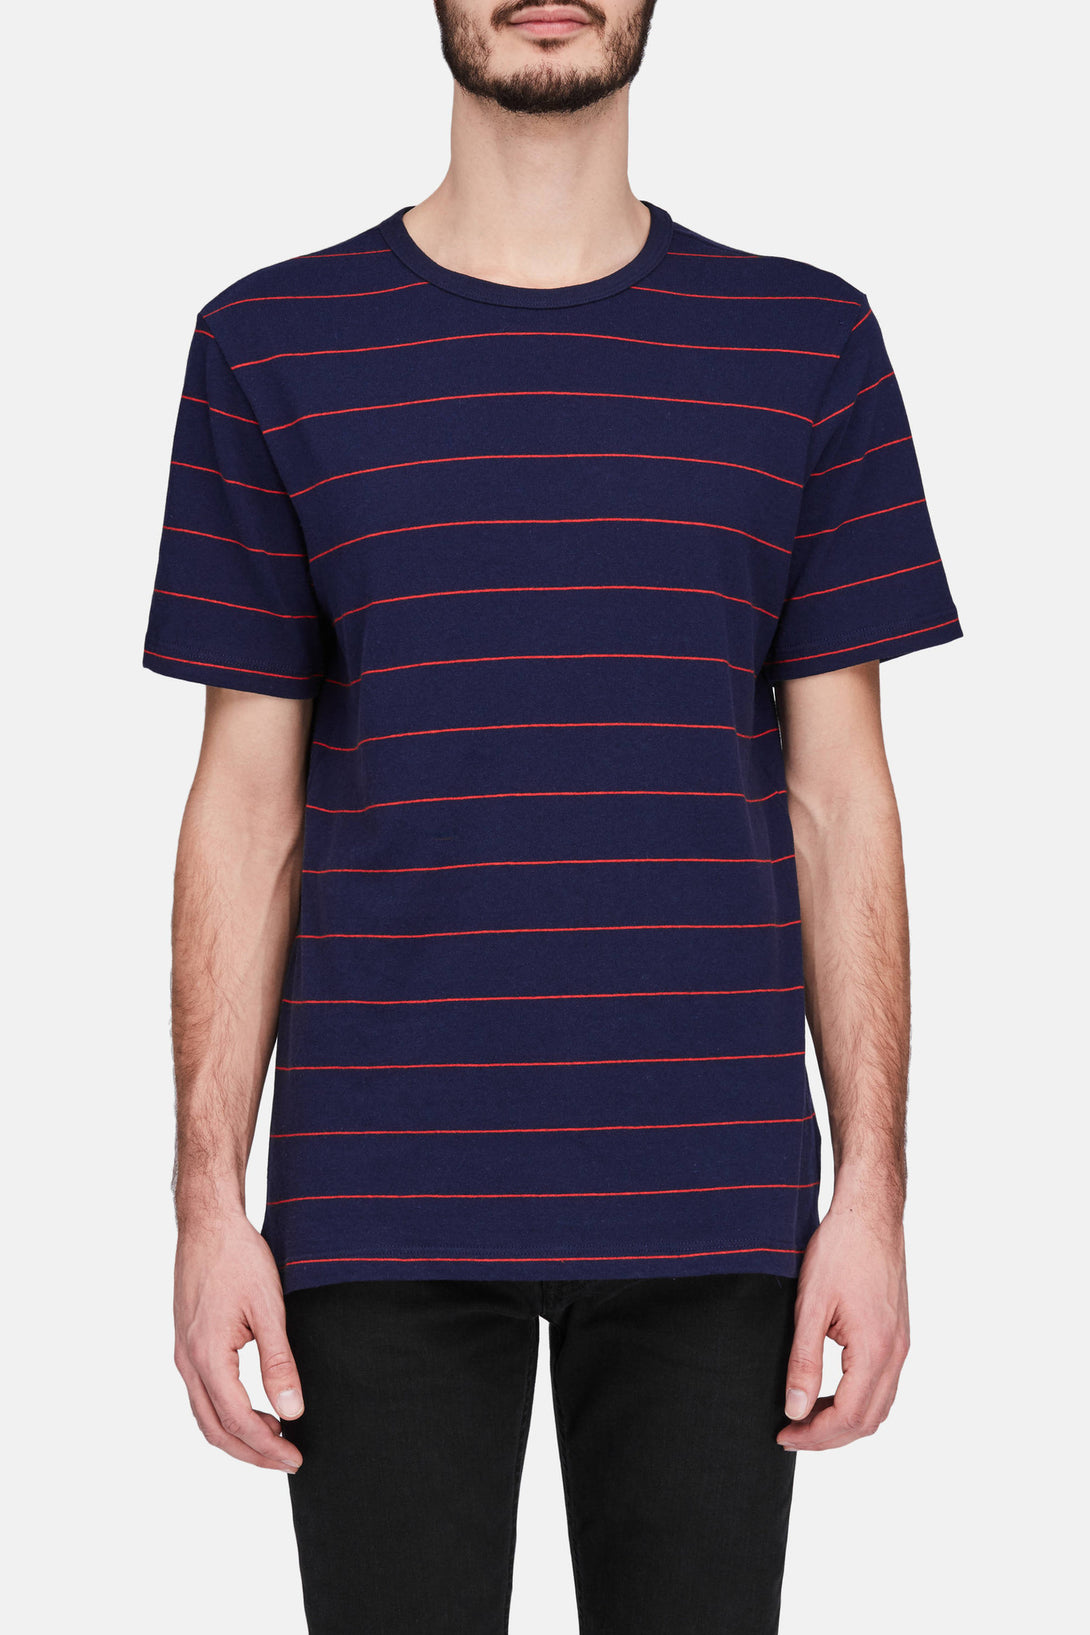 Short Sleeve Tee  - Red/Navy Stripe